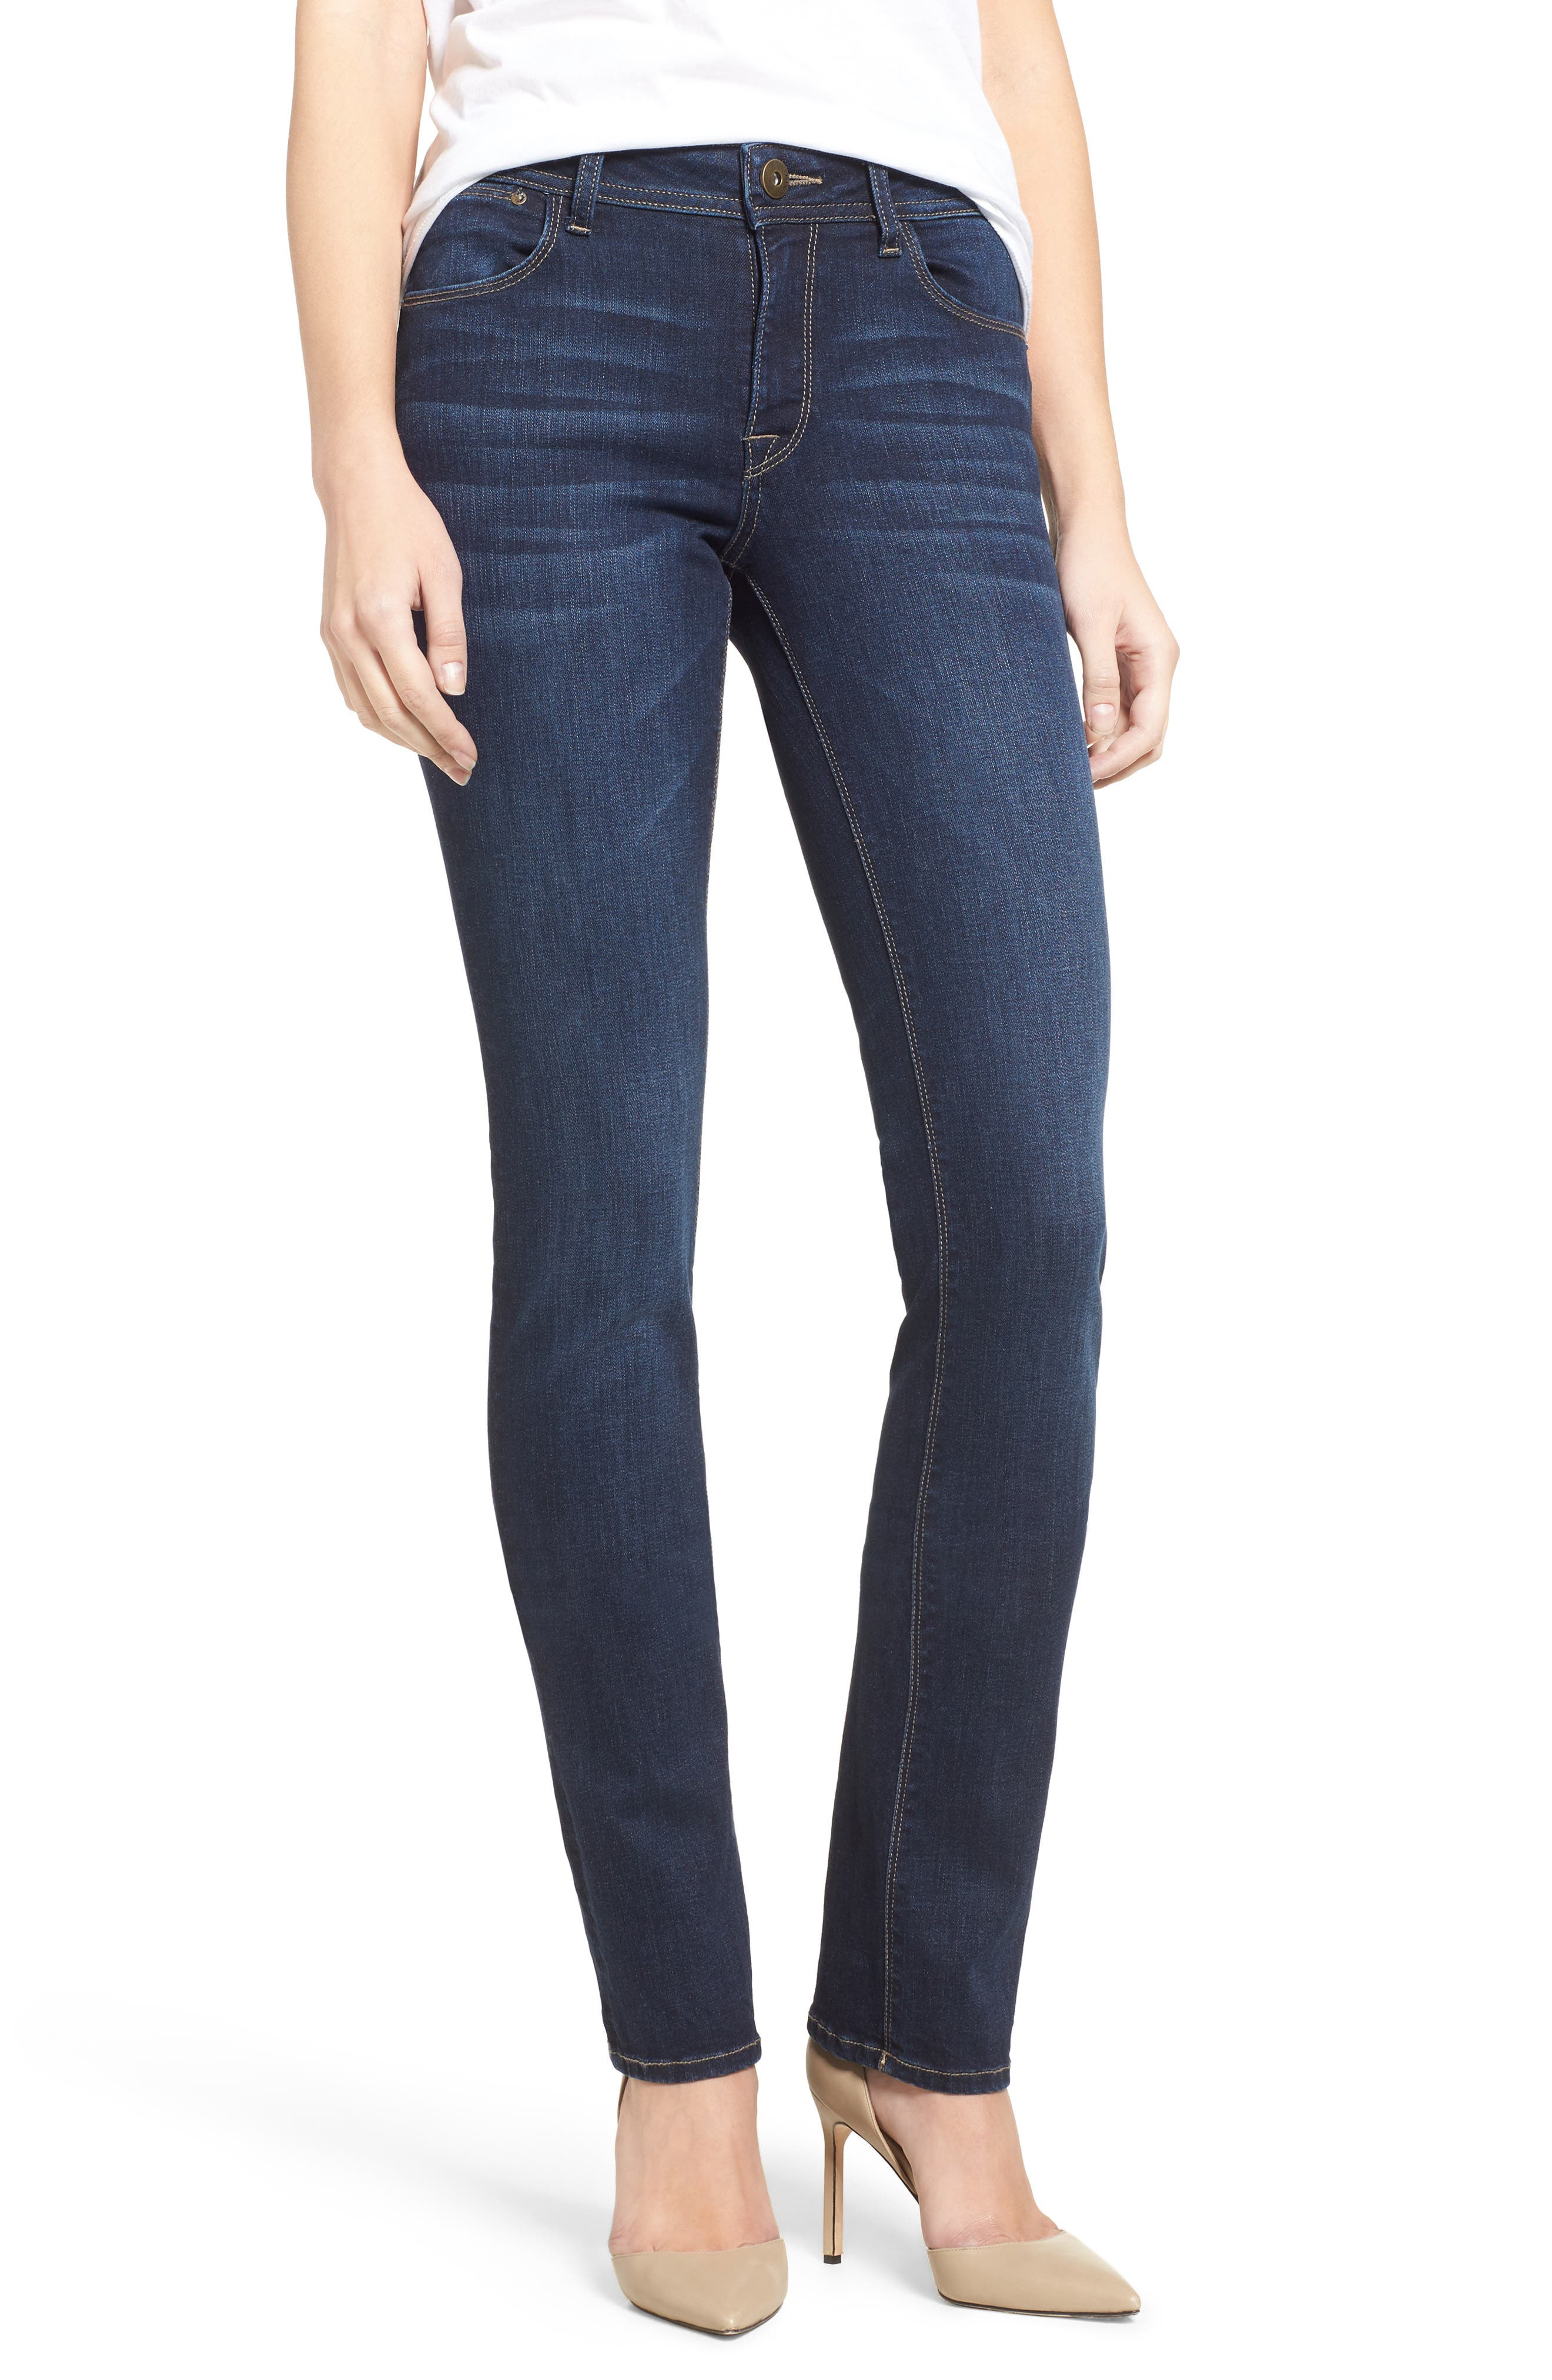 'Coco' Curvy Slim Straight Leg Jeans,                             Alternate thumbnail 2, color,